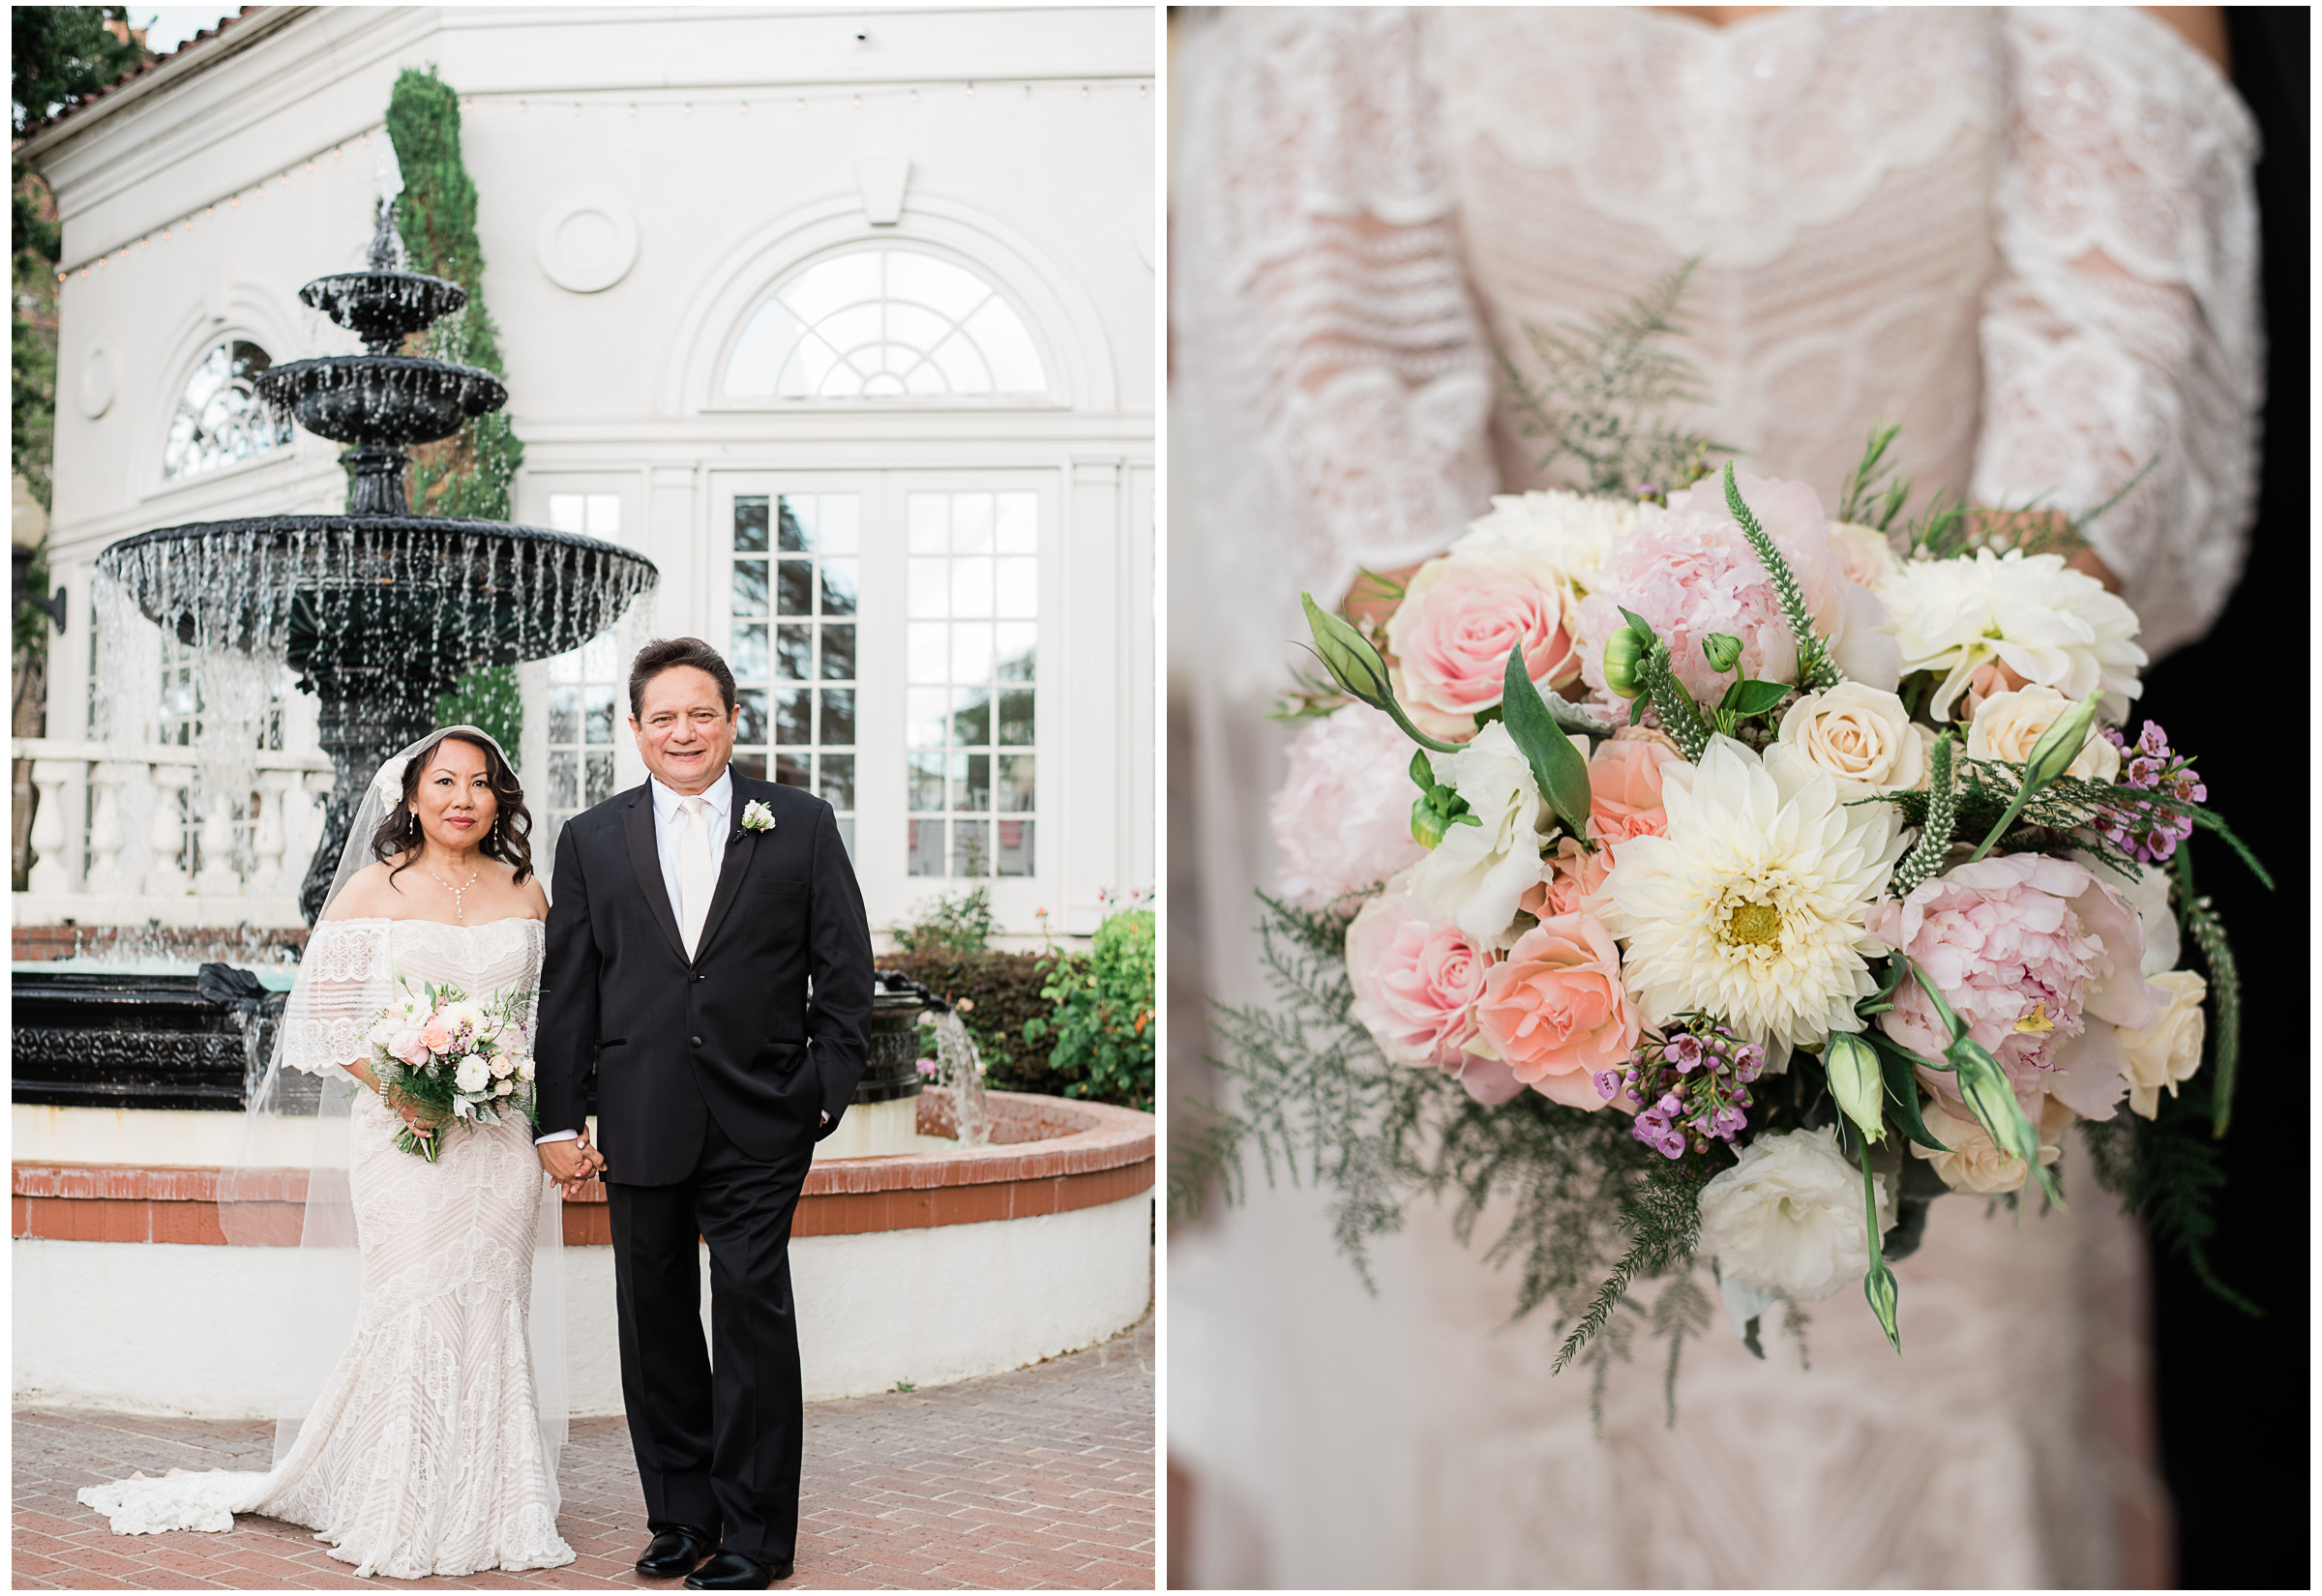 Sacramento Wedding - Sacramento Photographer - Vizcaya - Justin Wilcox Photography - 14.jpg